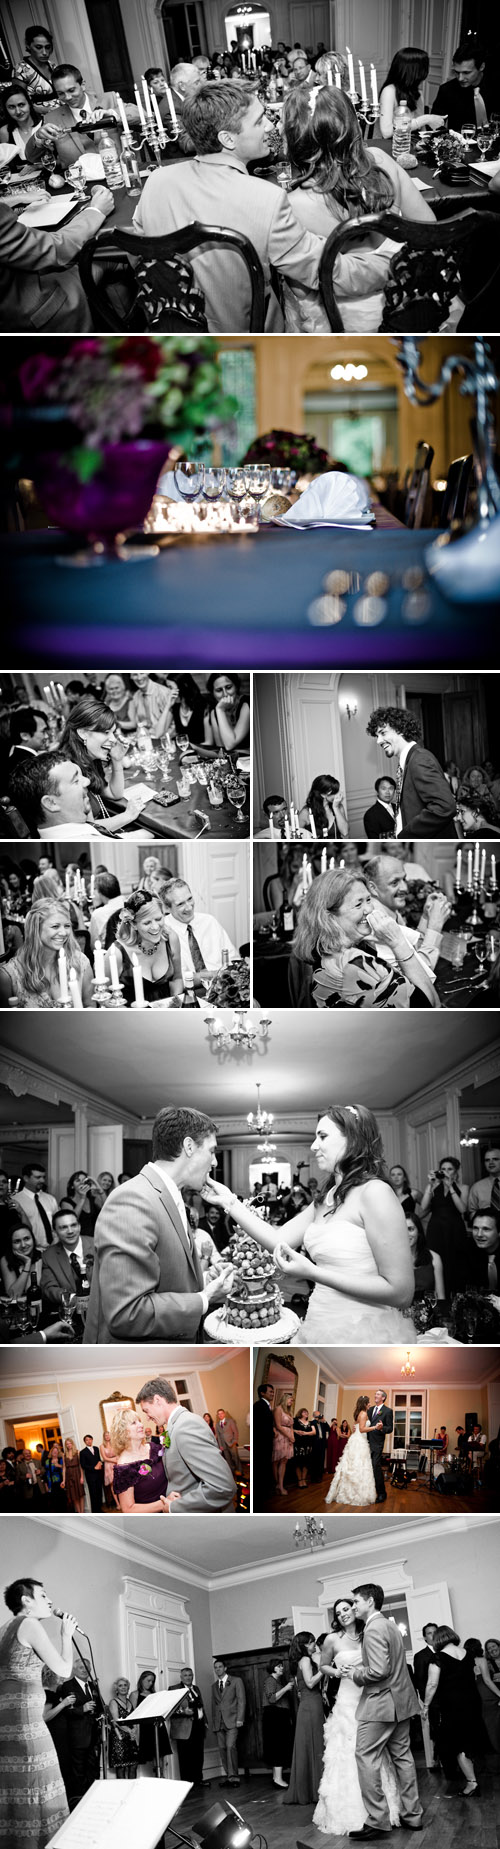 fairytale french chateau destination real wedding, images by Ivan Franchet